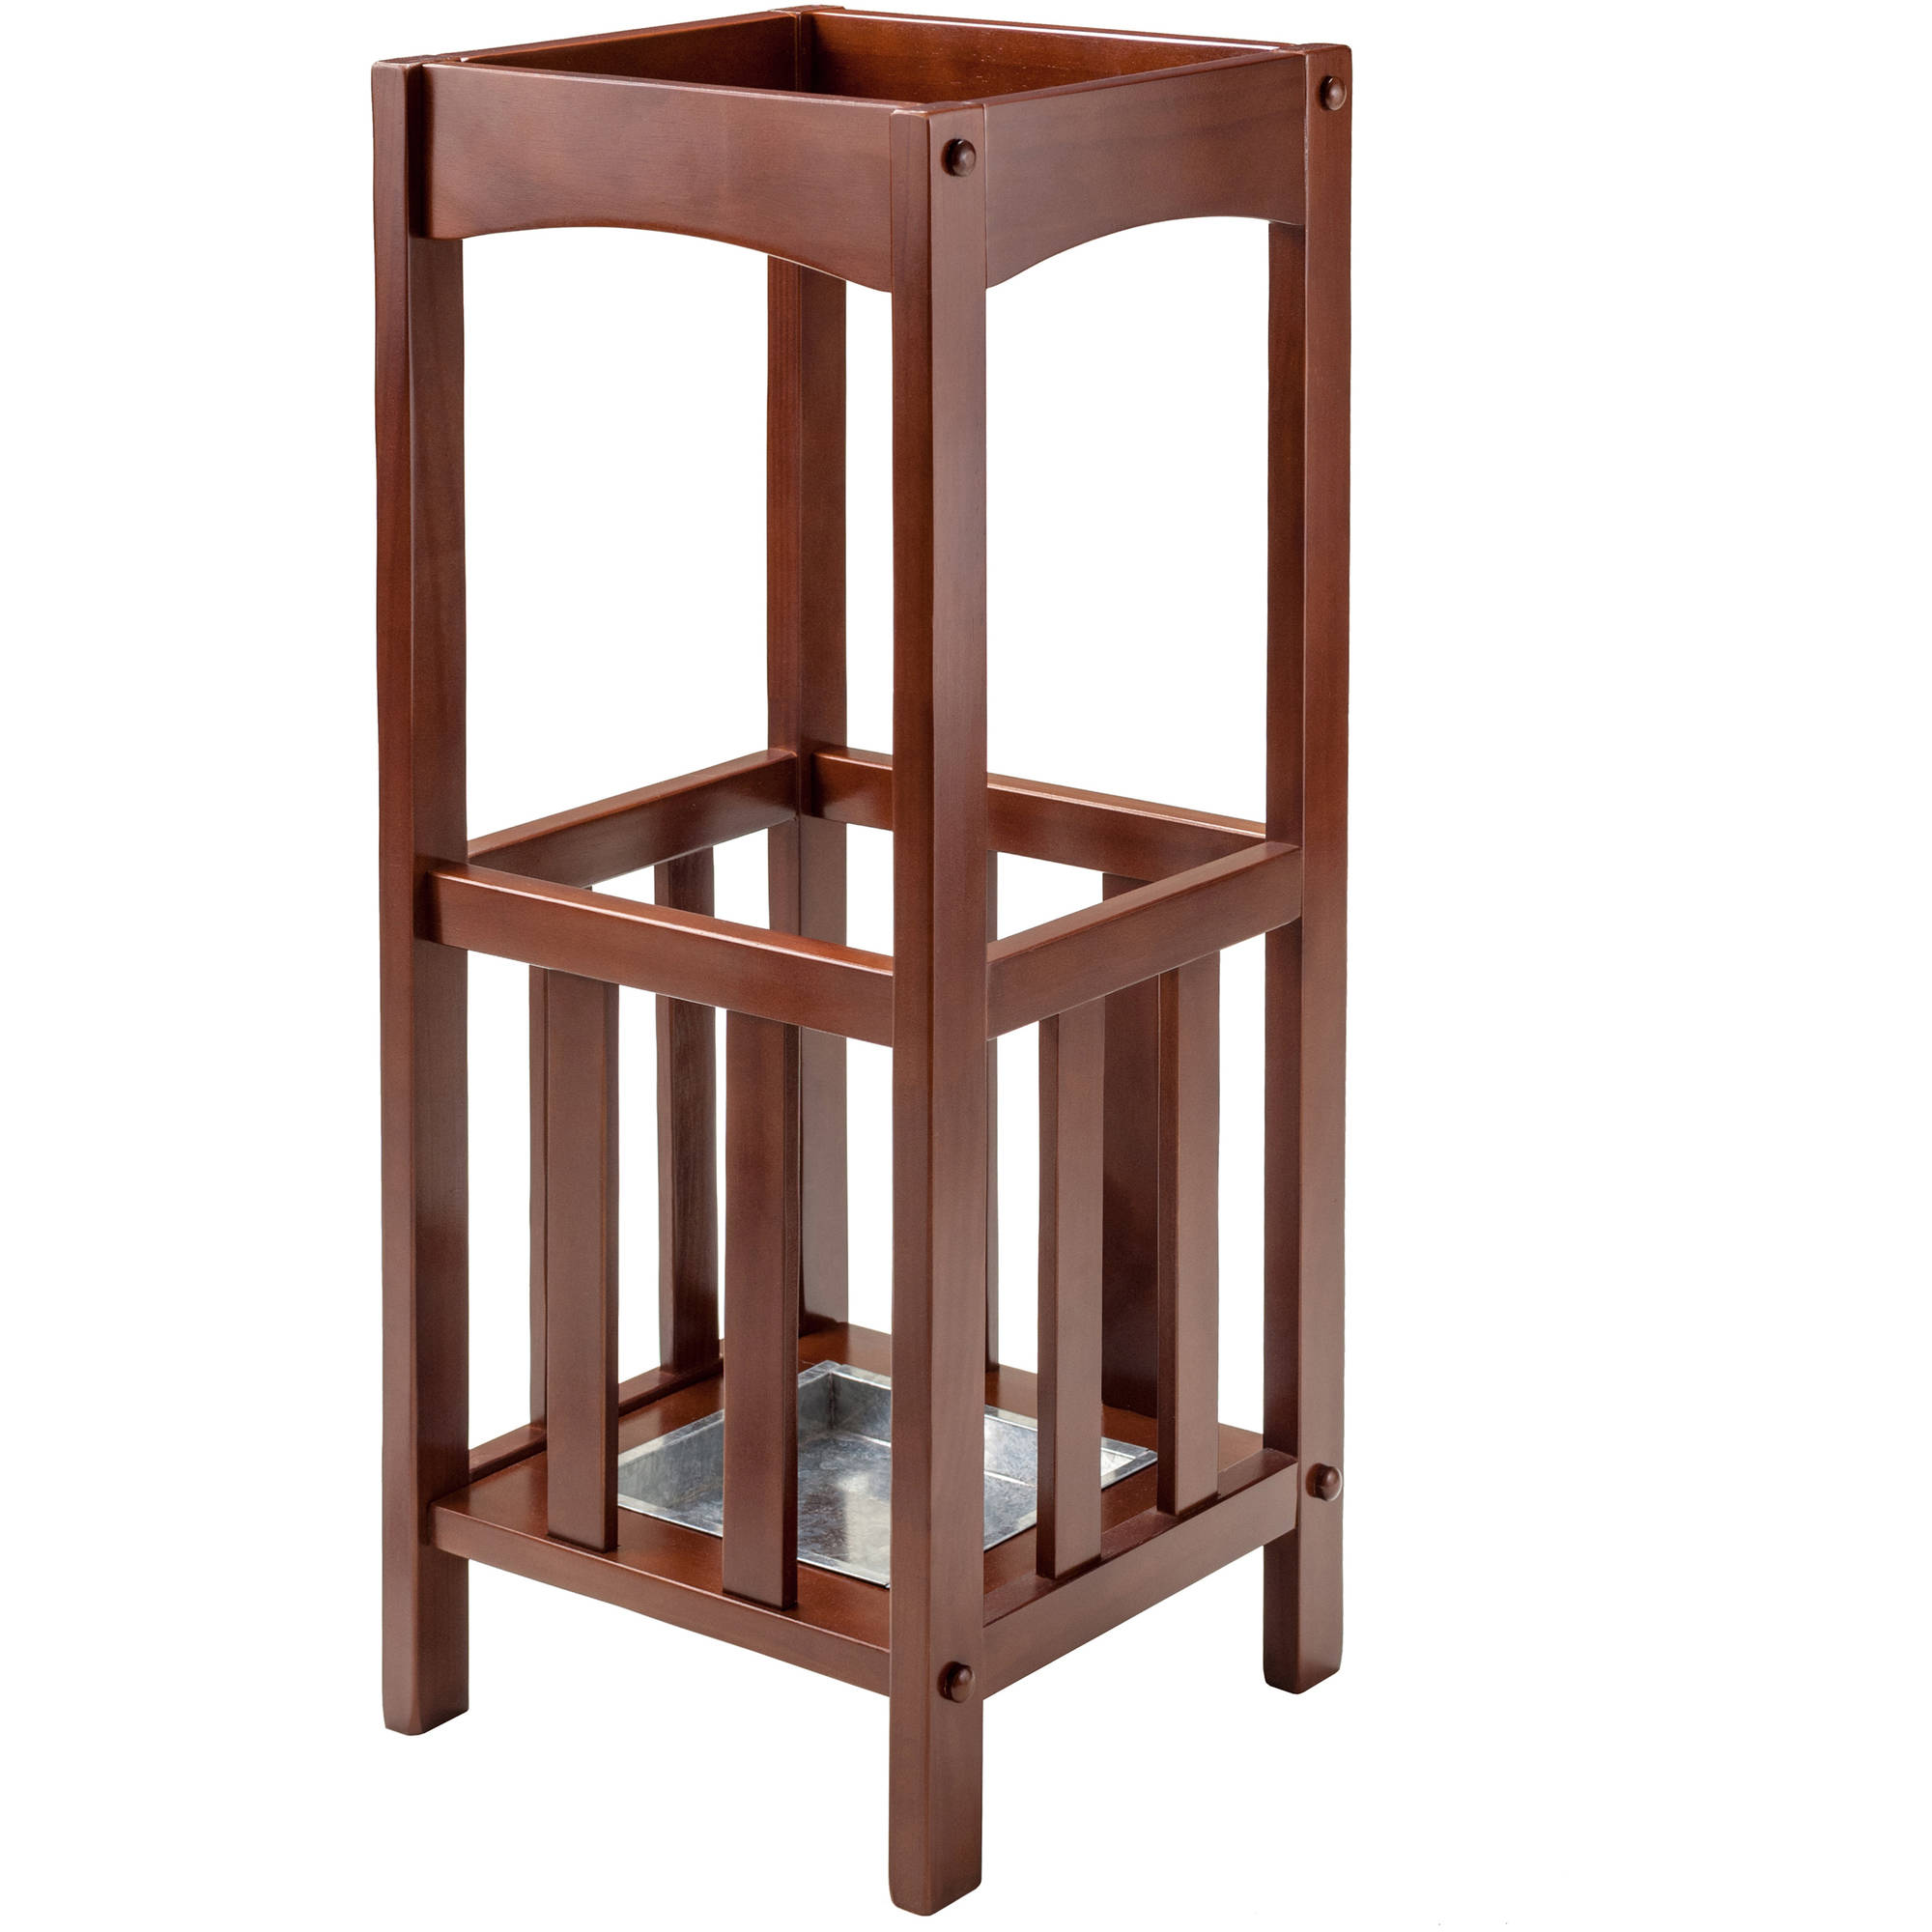 Rex Umbrella Stand with Metal Tray, Walnut